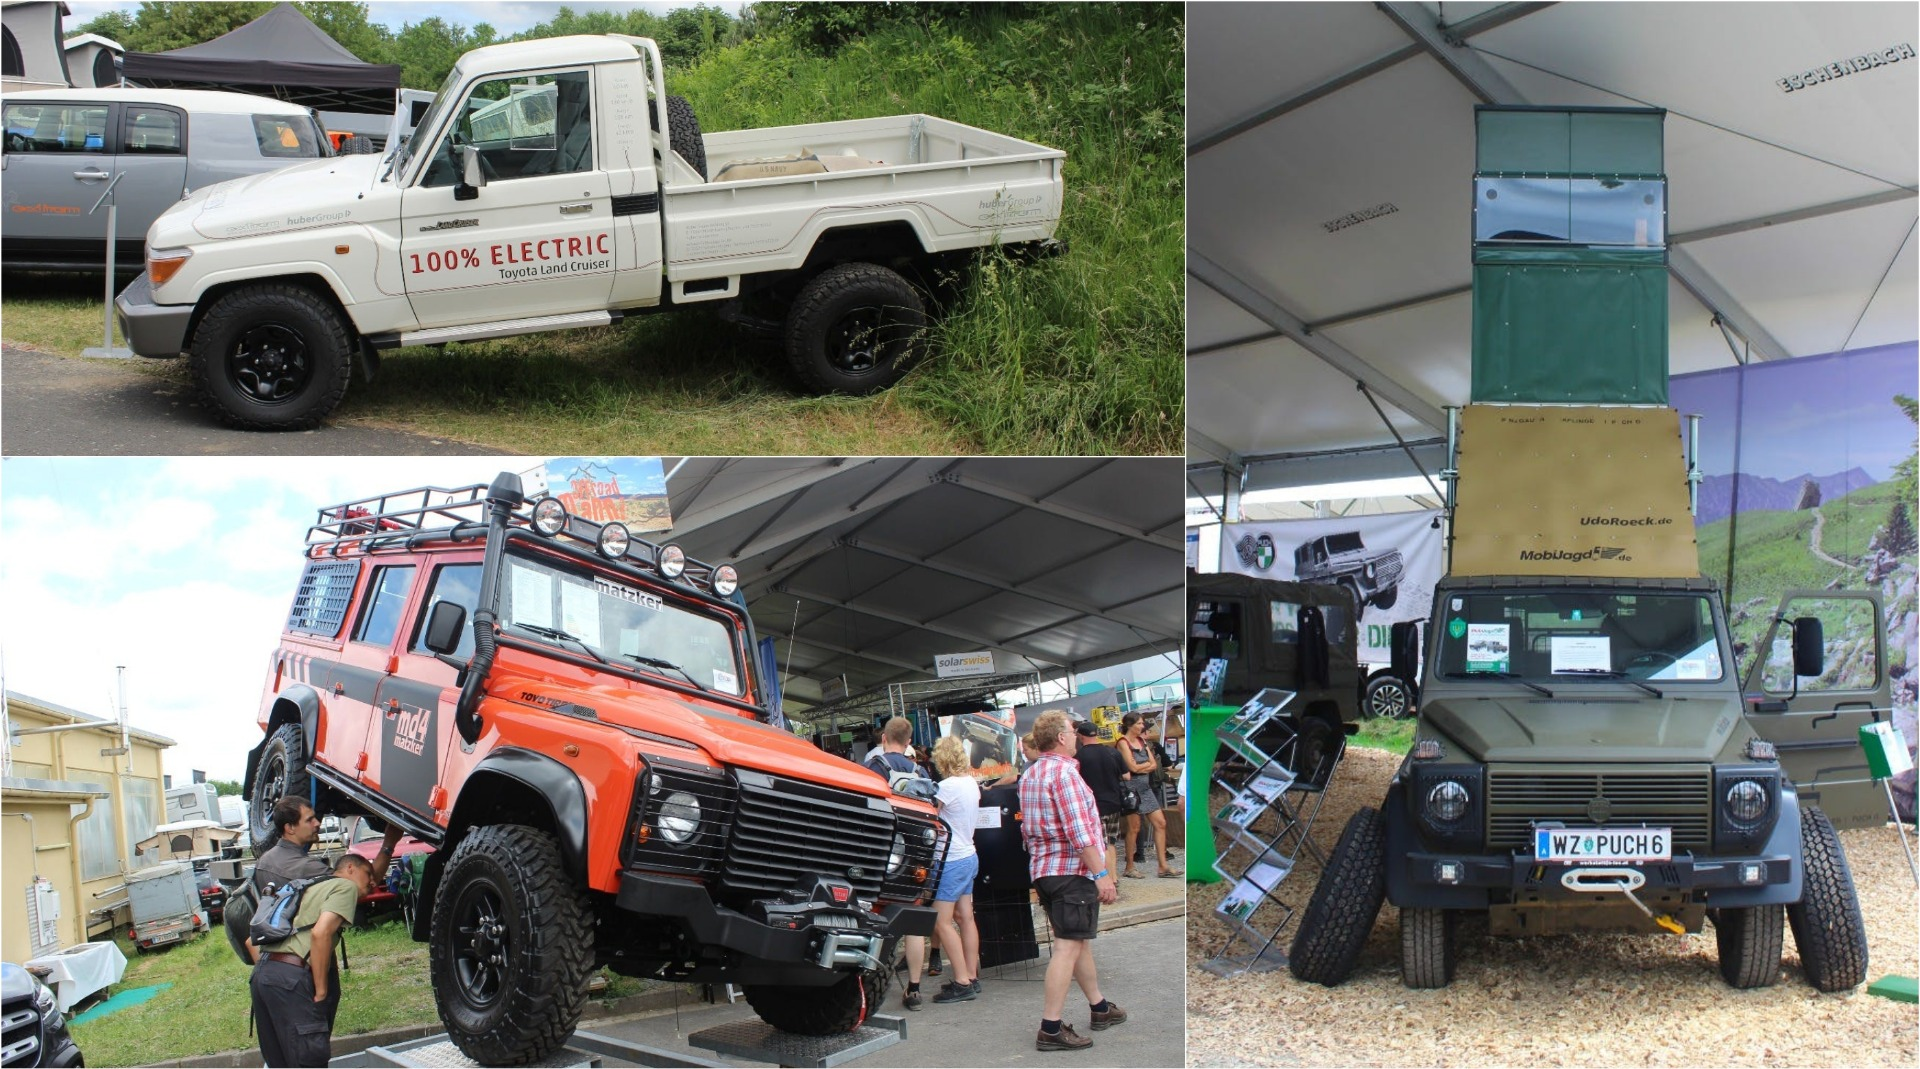 Electric Land Cruisers, 3-story G-Wagens and more from